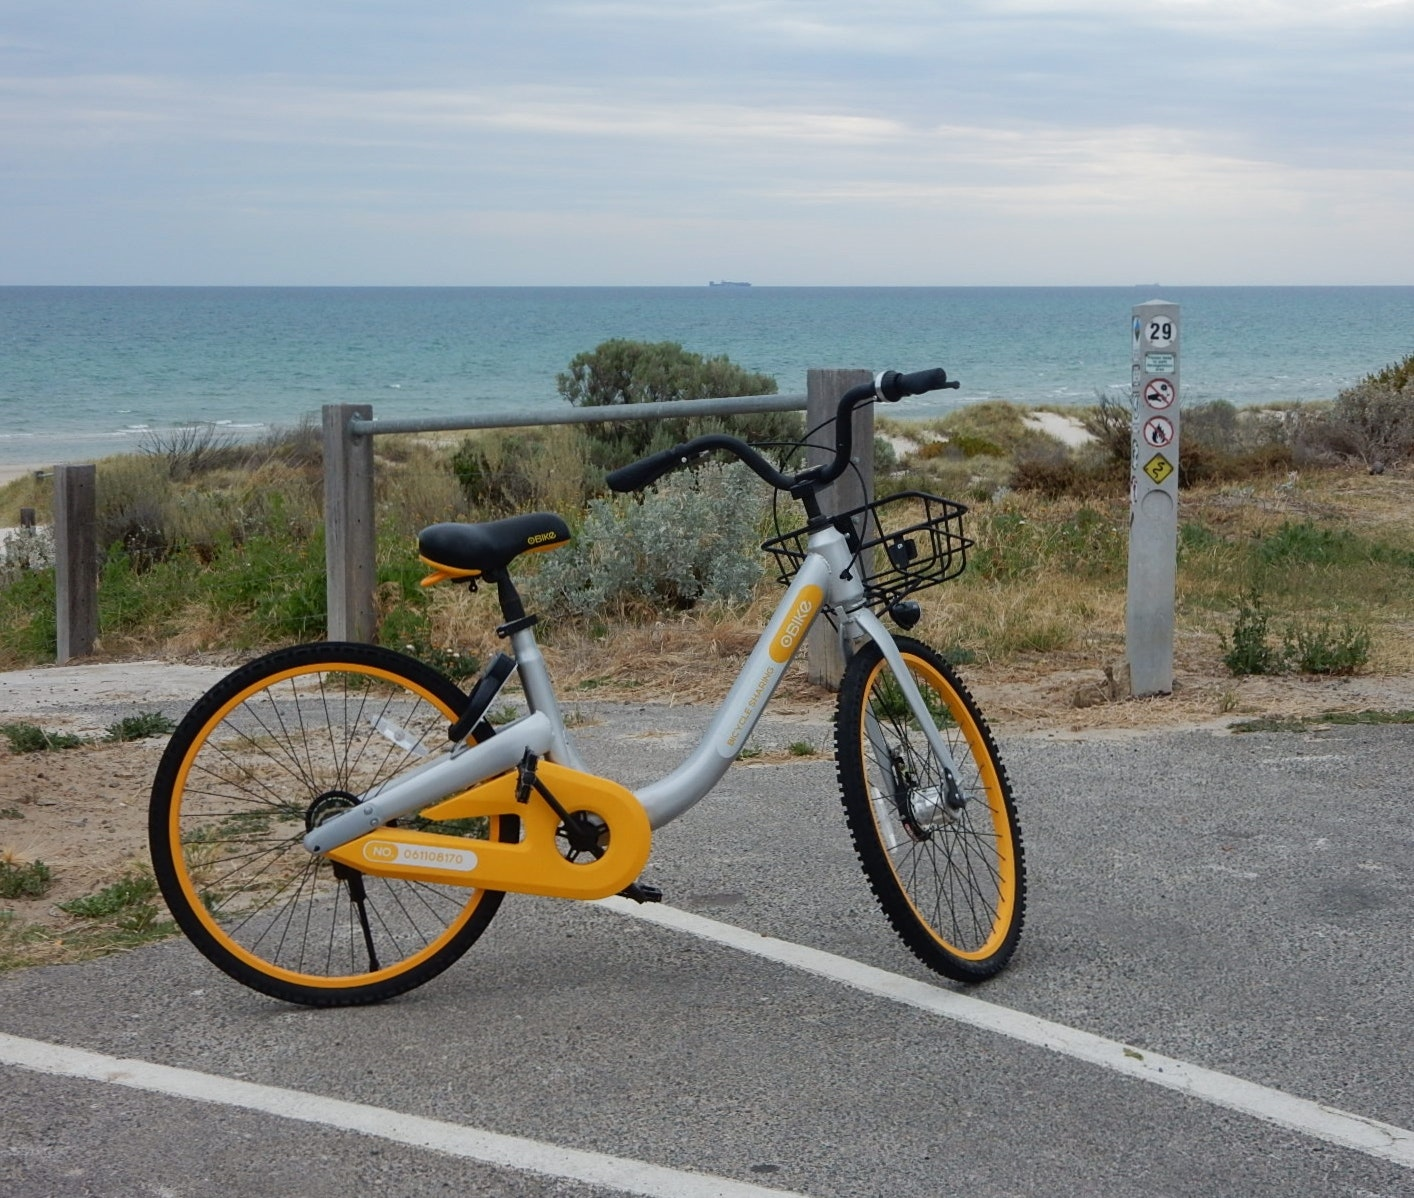 Oh no, oBikes are leaving Melbourne! But this doesn't mean bike sharing schemes are dead